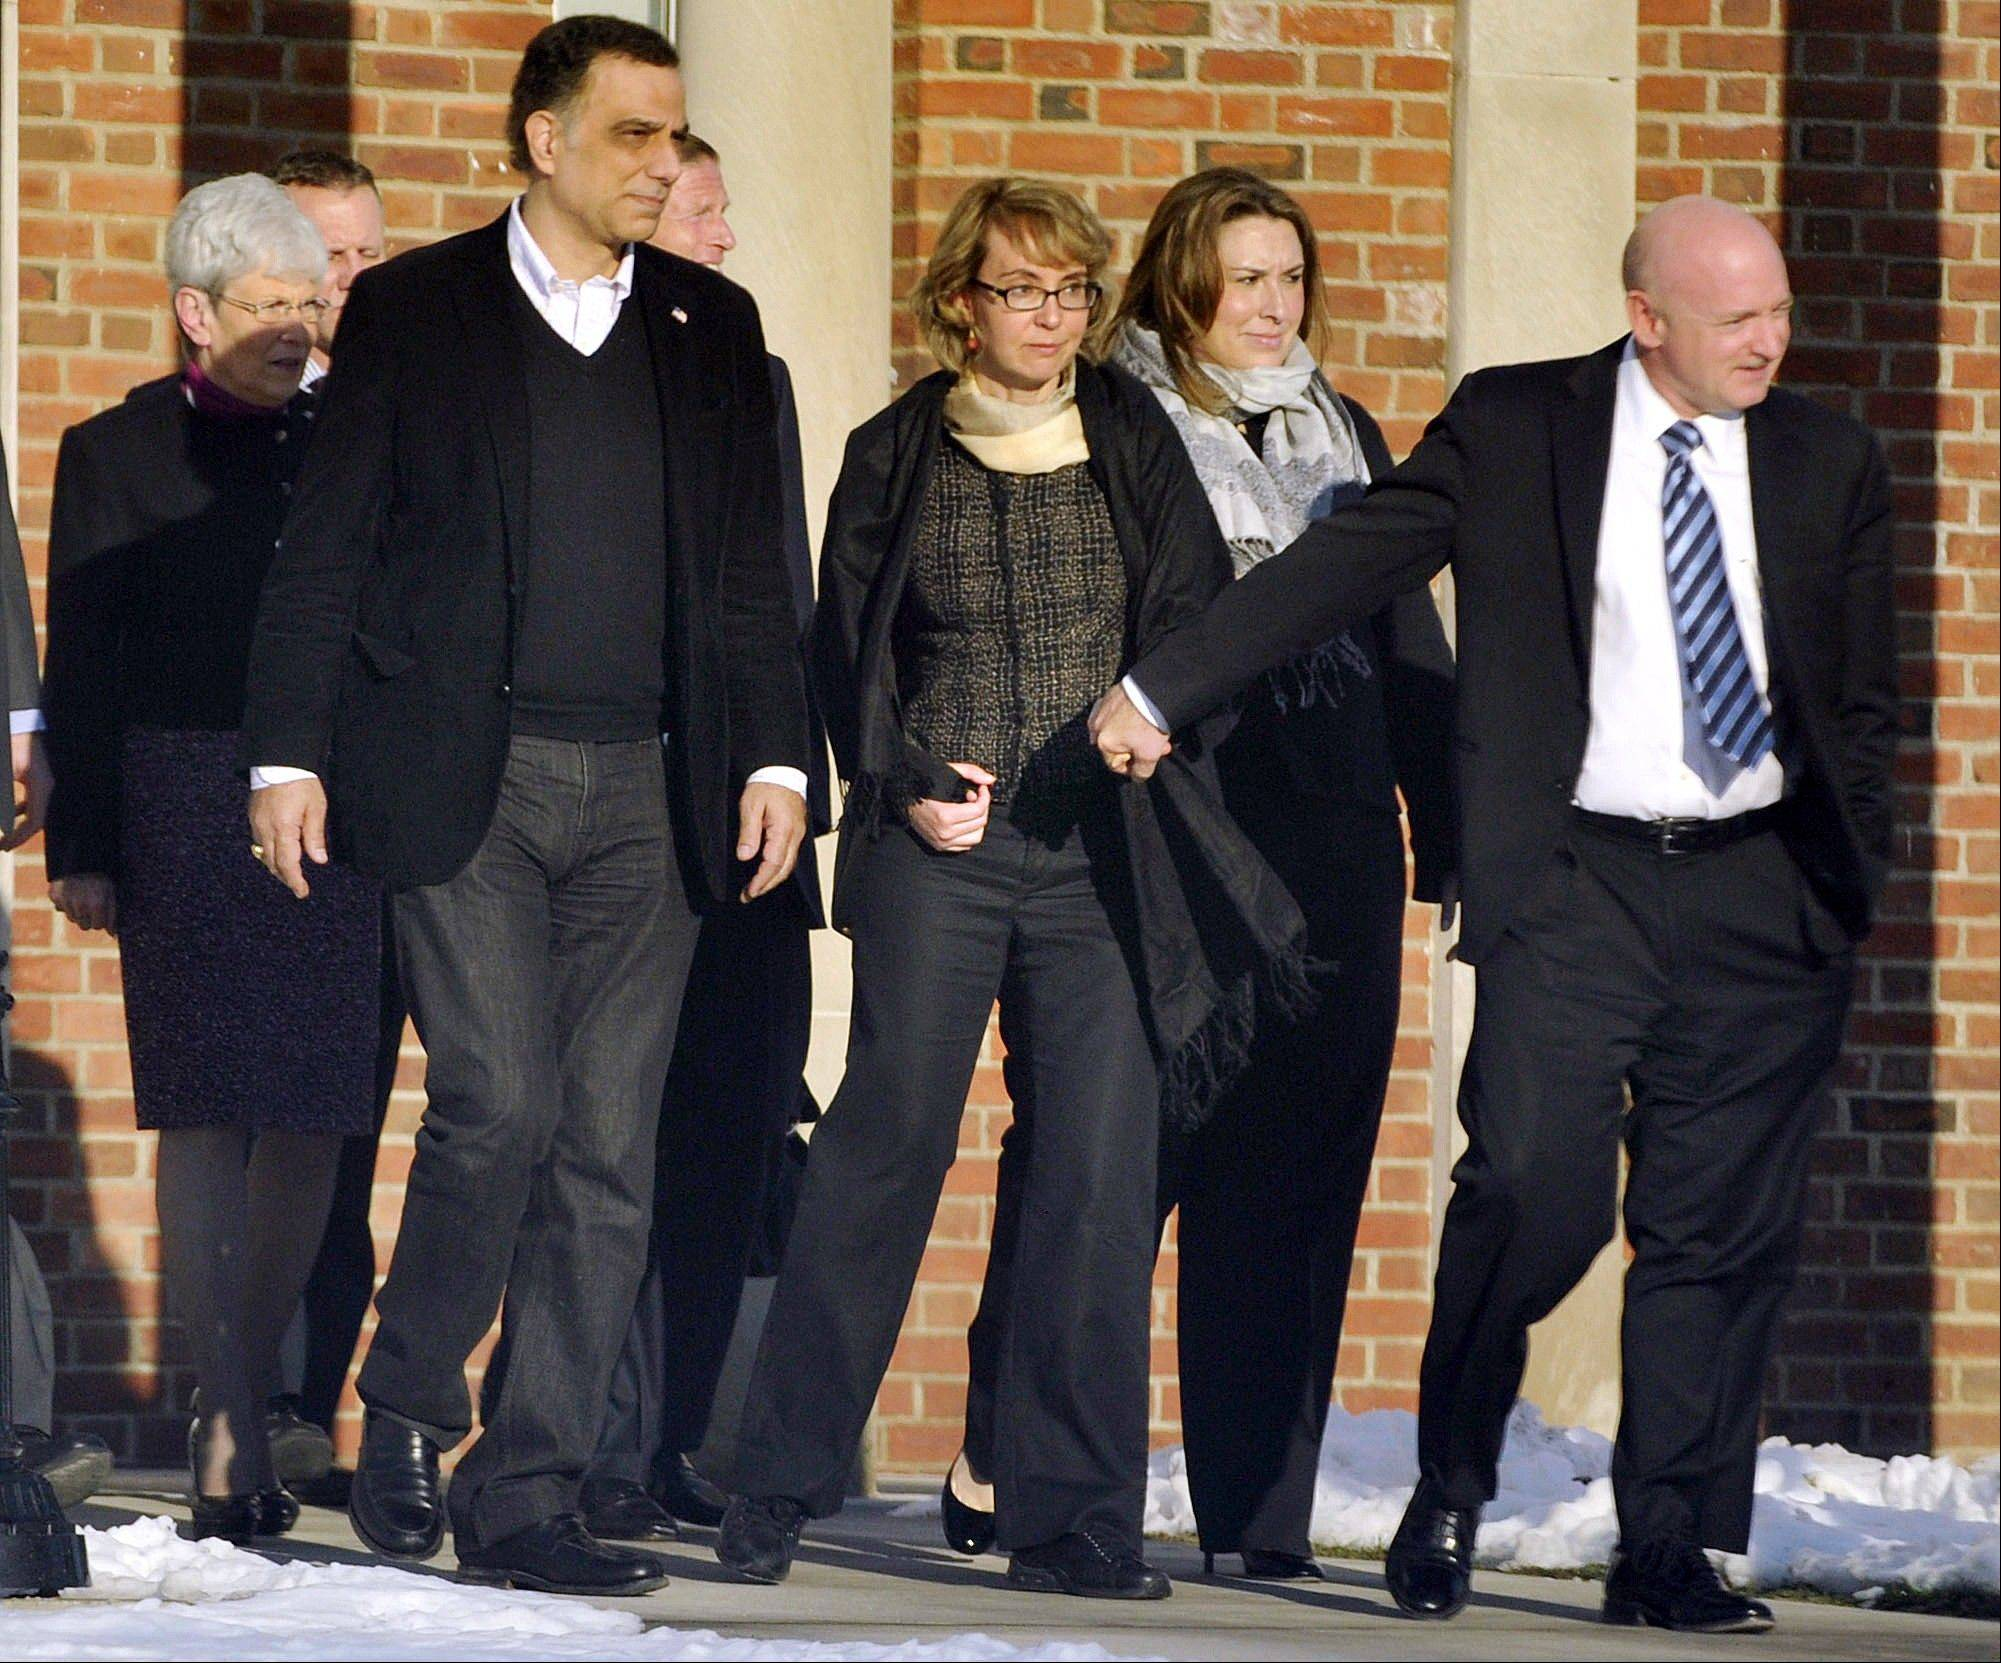 Former U.S. Rep. Gabrielle Giffords, center, holds hands Friday with her husband, Mark Kelly, while exiting Town Hall at Fairfield Hills Campus in Newtown, Conn. after meeting with Newtown First Selectman Pat Llodra and other officials.